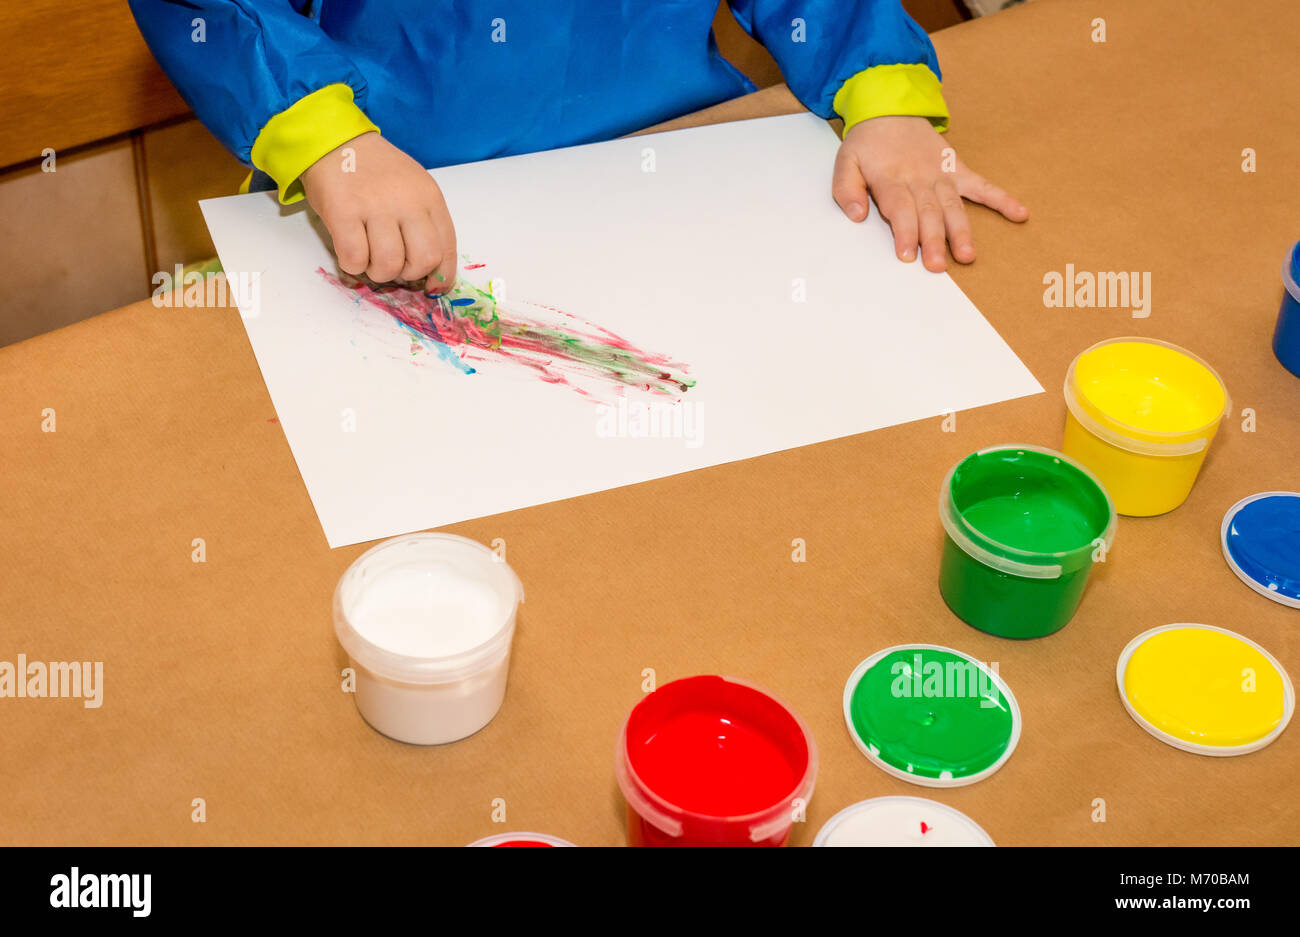 Child hands painted in colorful paits. Education, school, creativity and painting concept. Soft focus an blurry - Stock Image